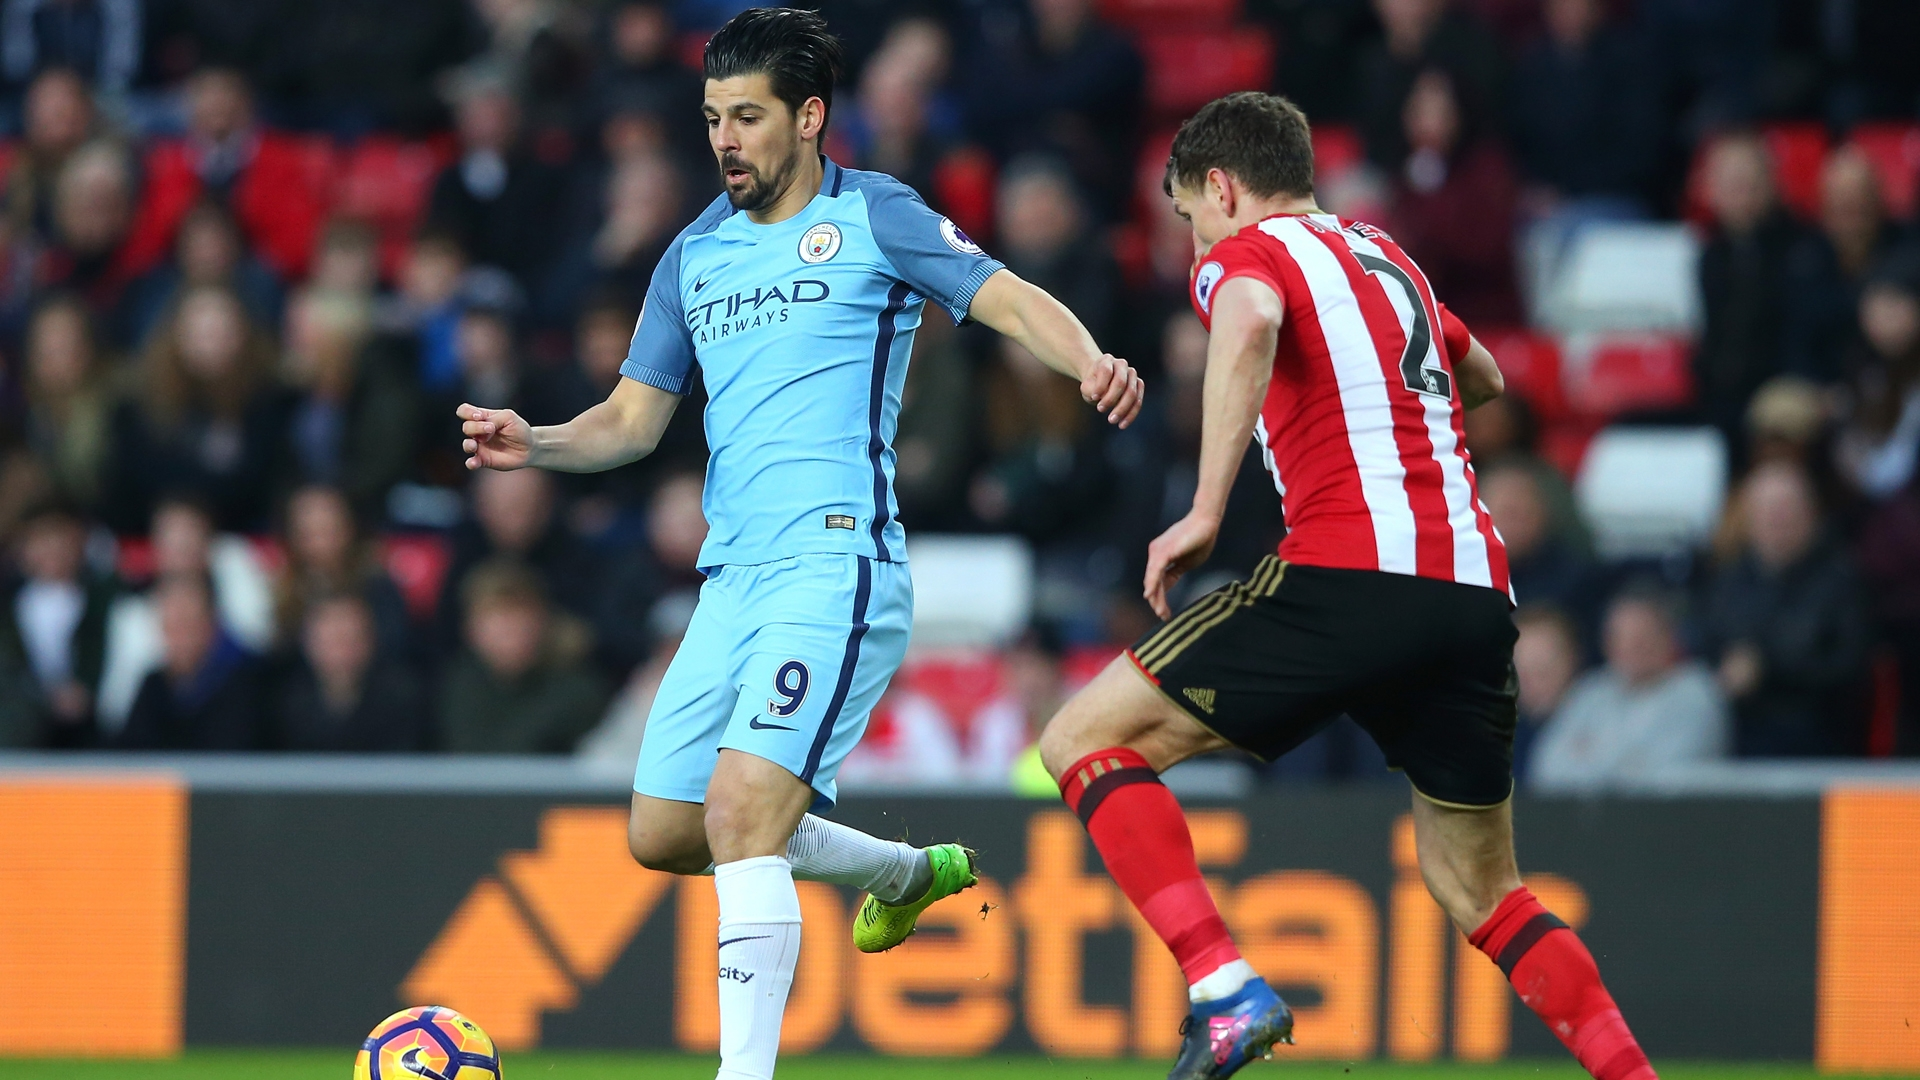 Nolito s brief time in the Premier League es to an end